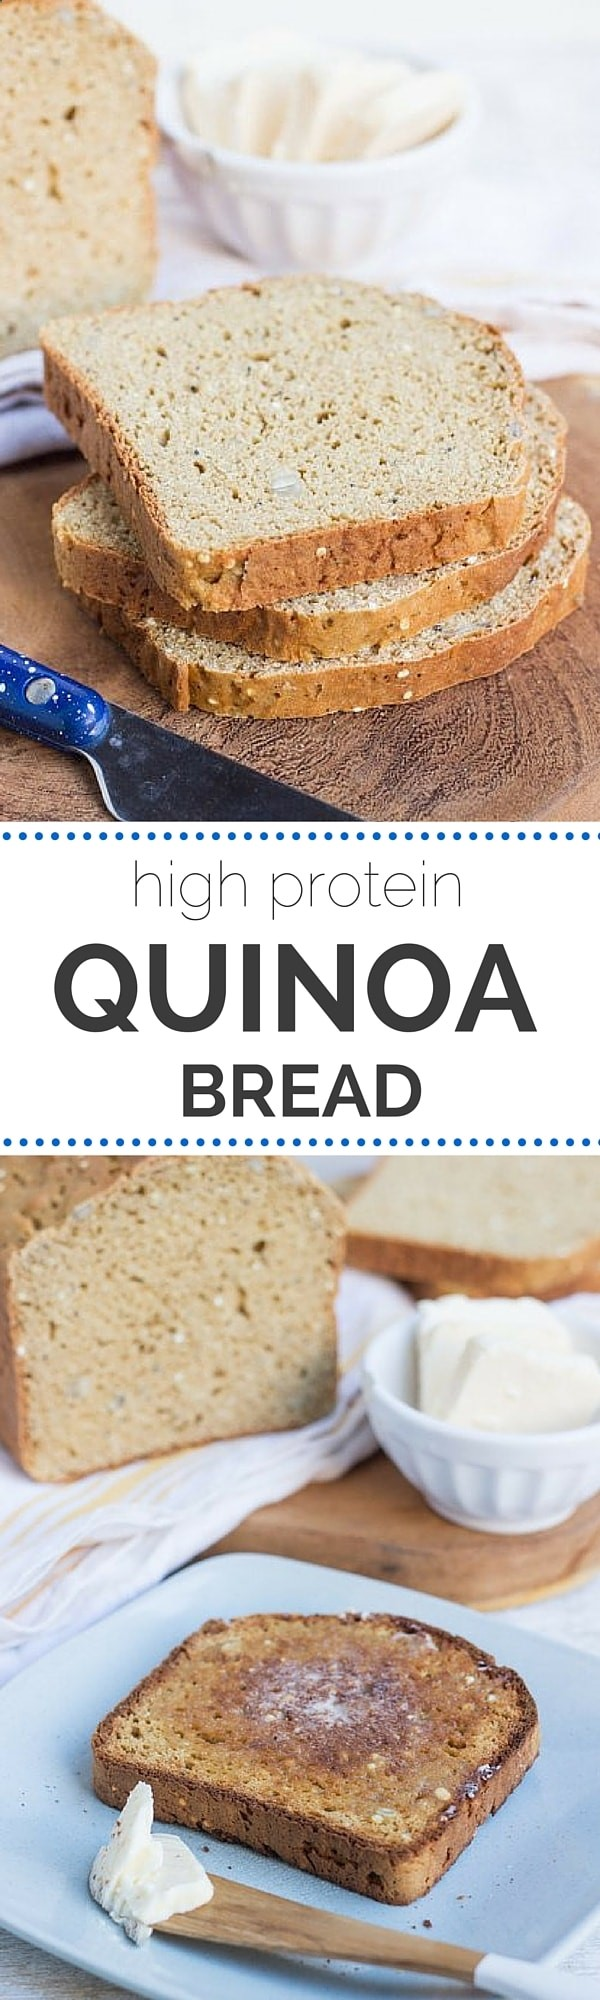 Best Gluten Free Sandwich Bread Ive Ever Had This High Protein Quinoa Bread Recipe Is Made With With Images Quinoa Bread Gluten Free Sandwich Bread Gluten Free Sandwiches